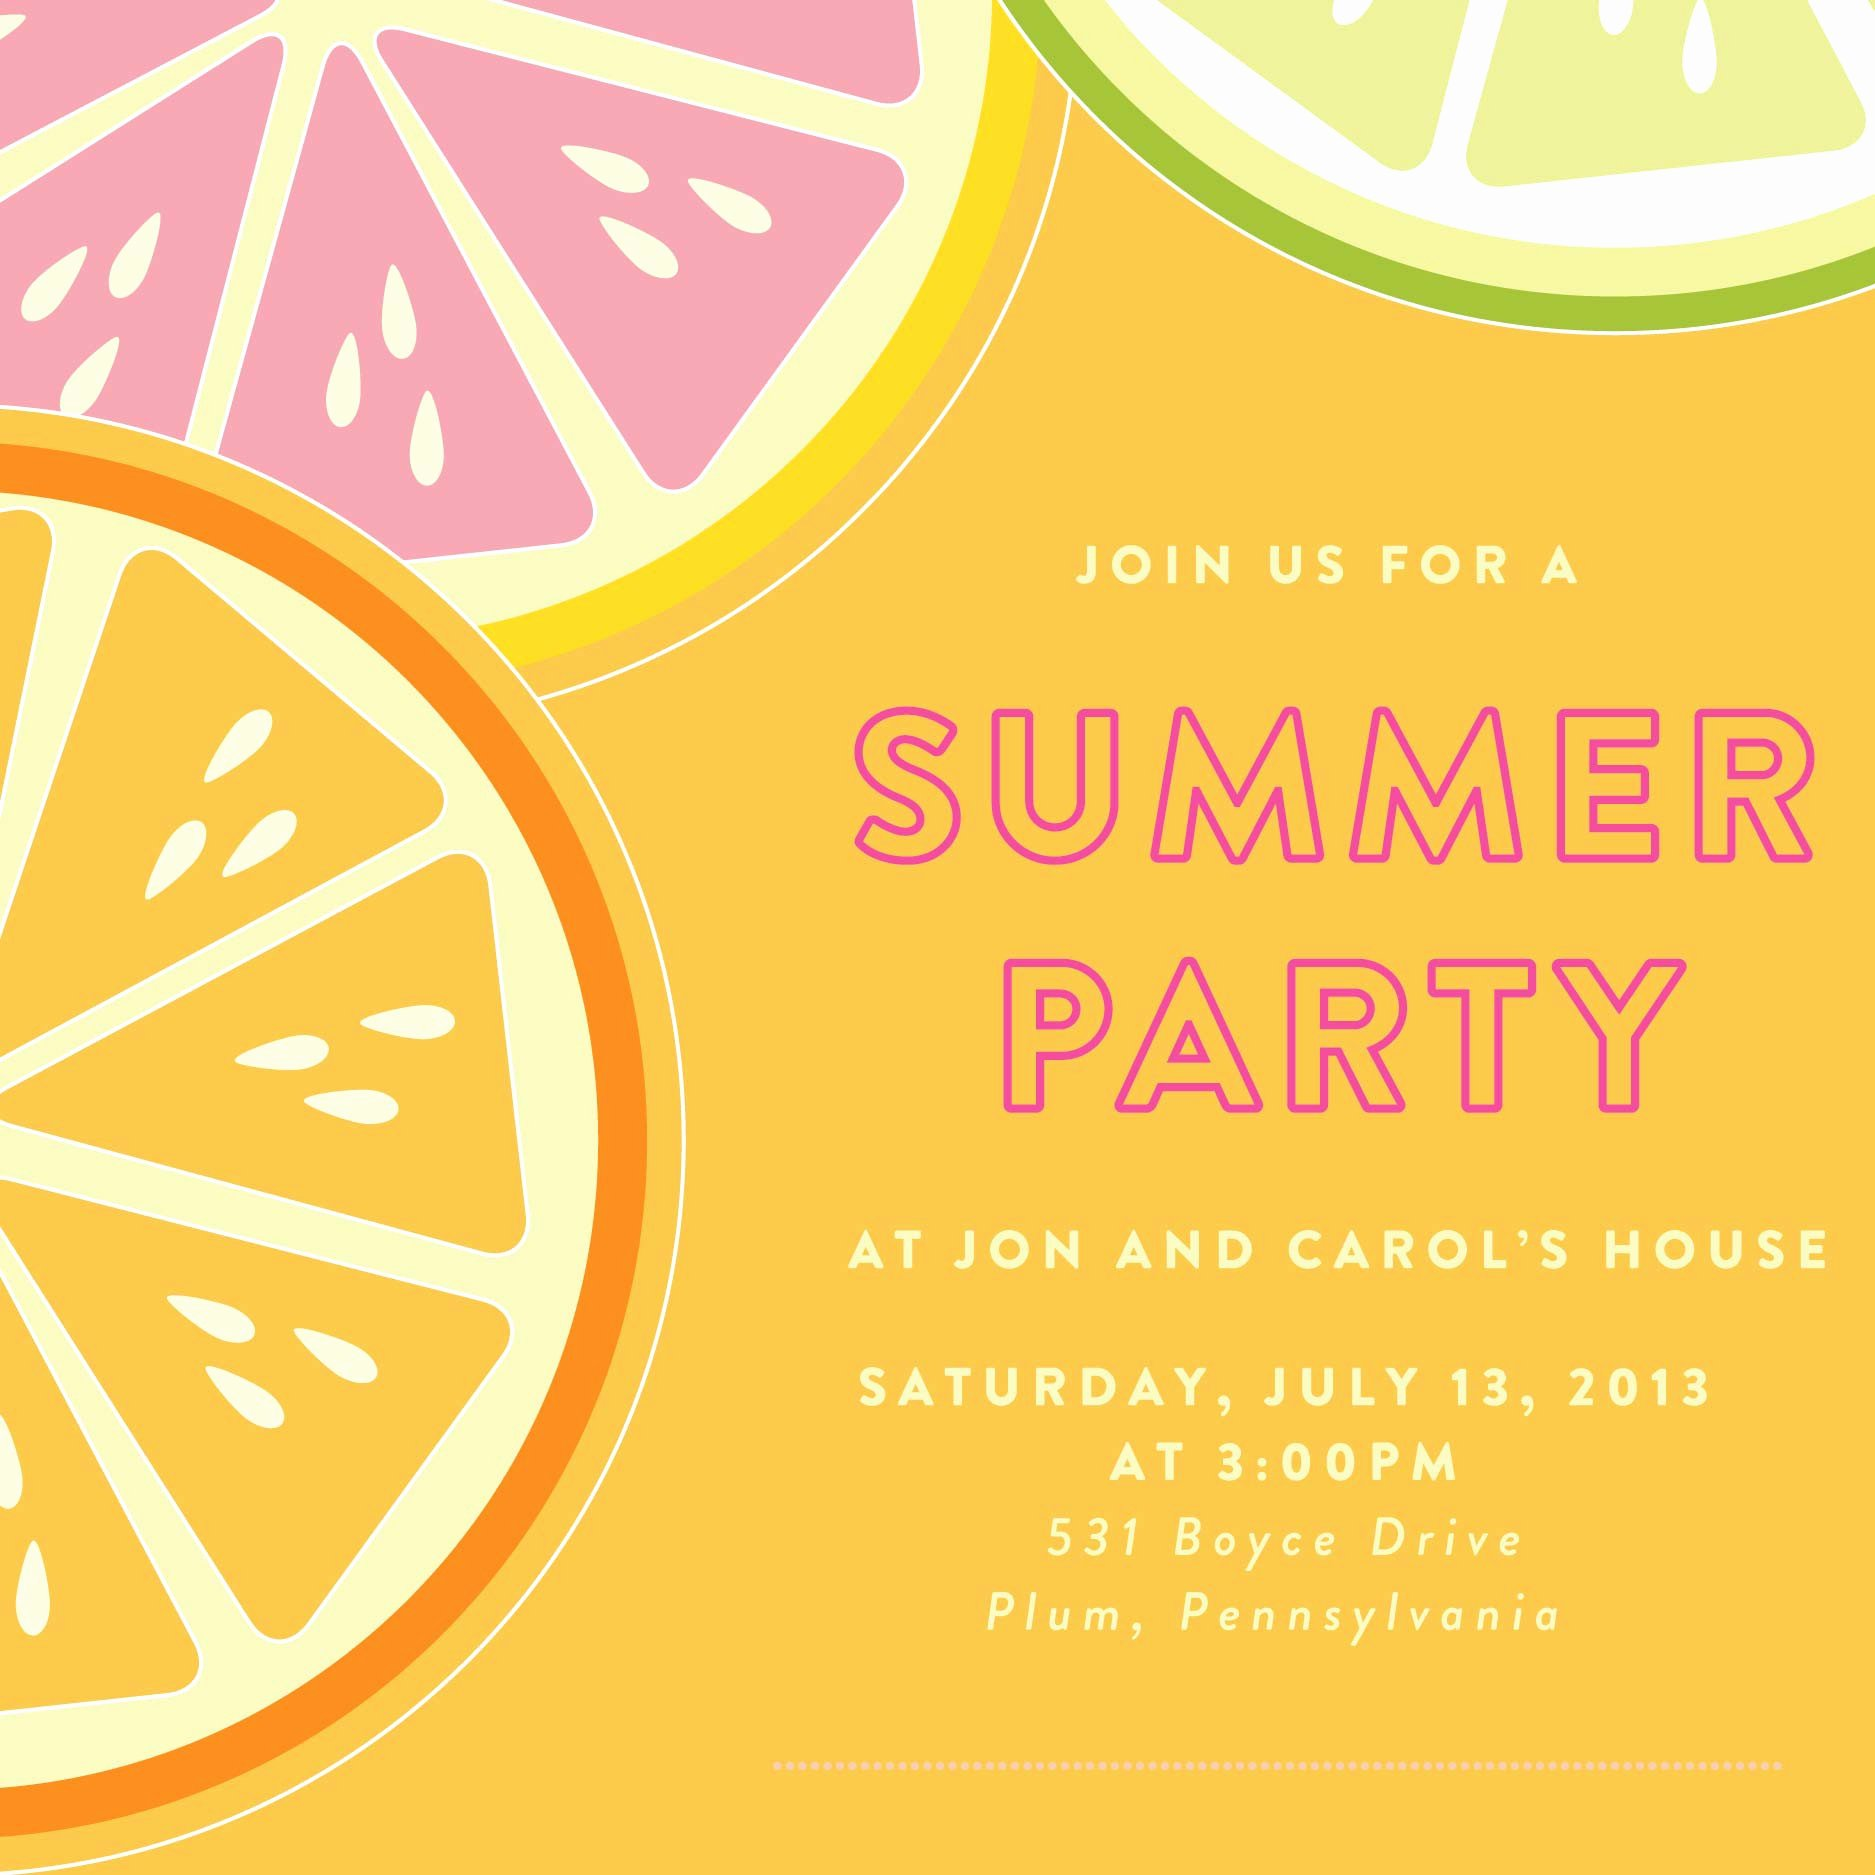 Summer Party Invitation Template Lovely Card Template Summer Party Invitation Template Card